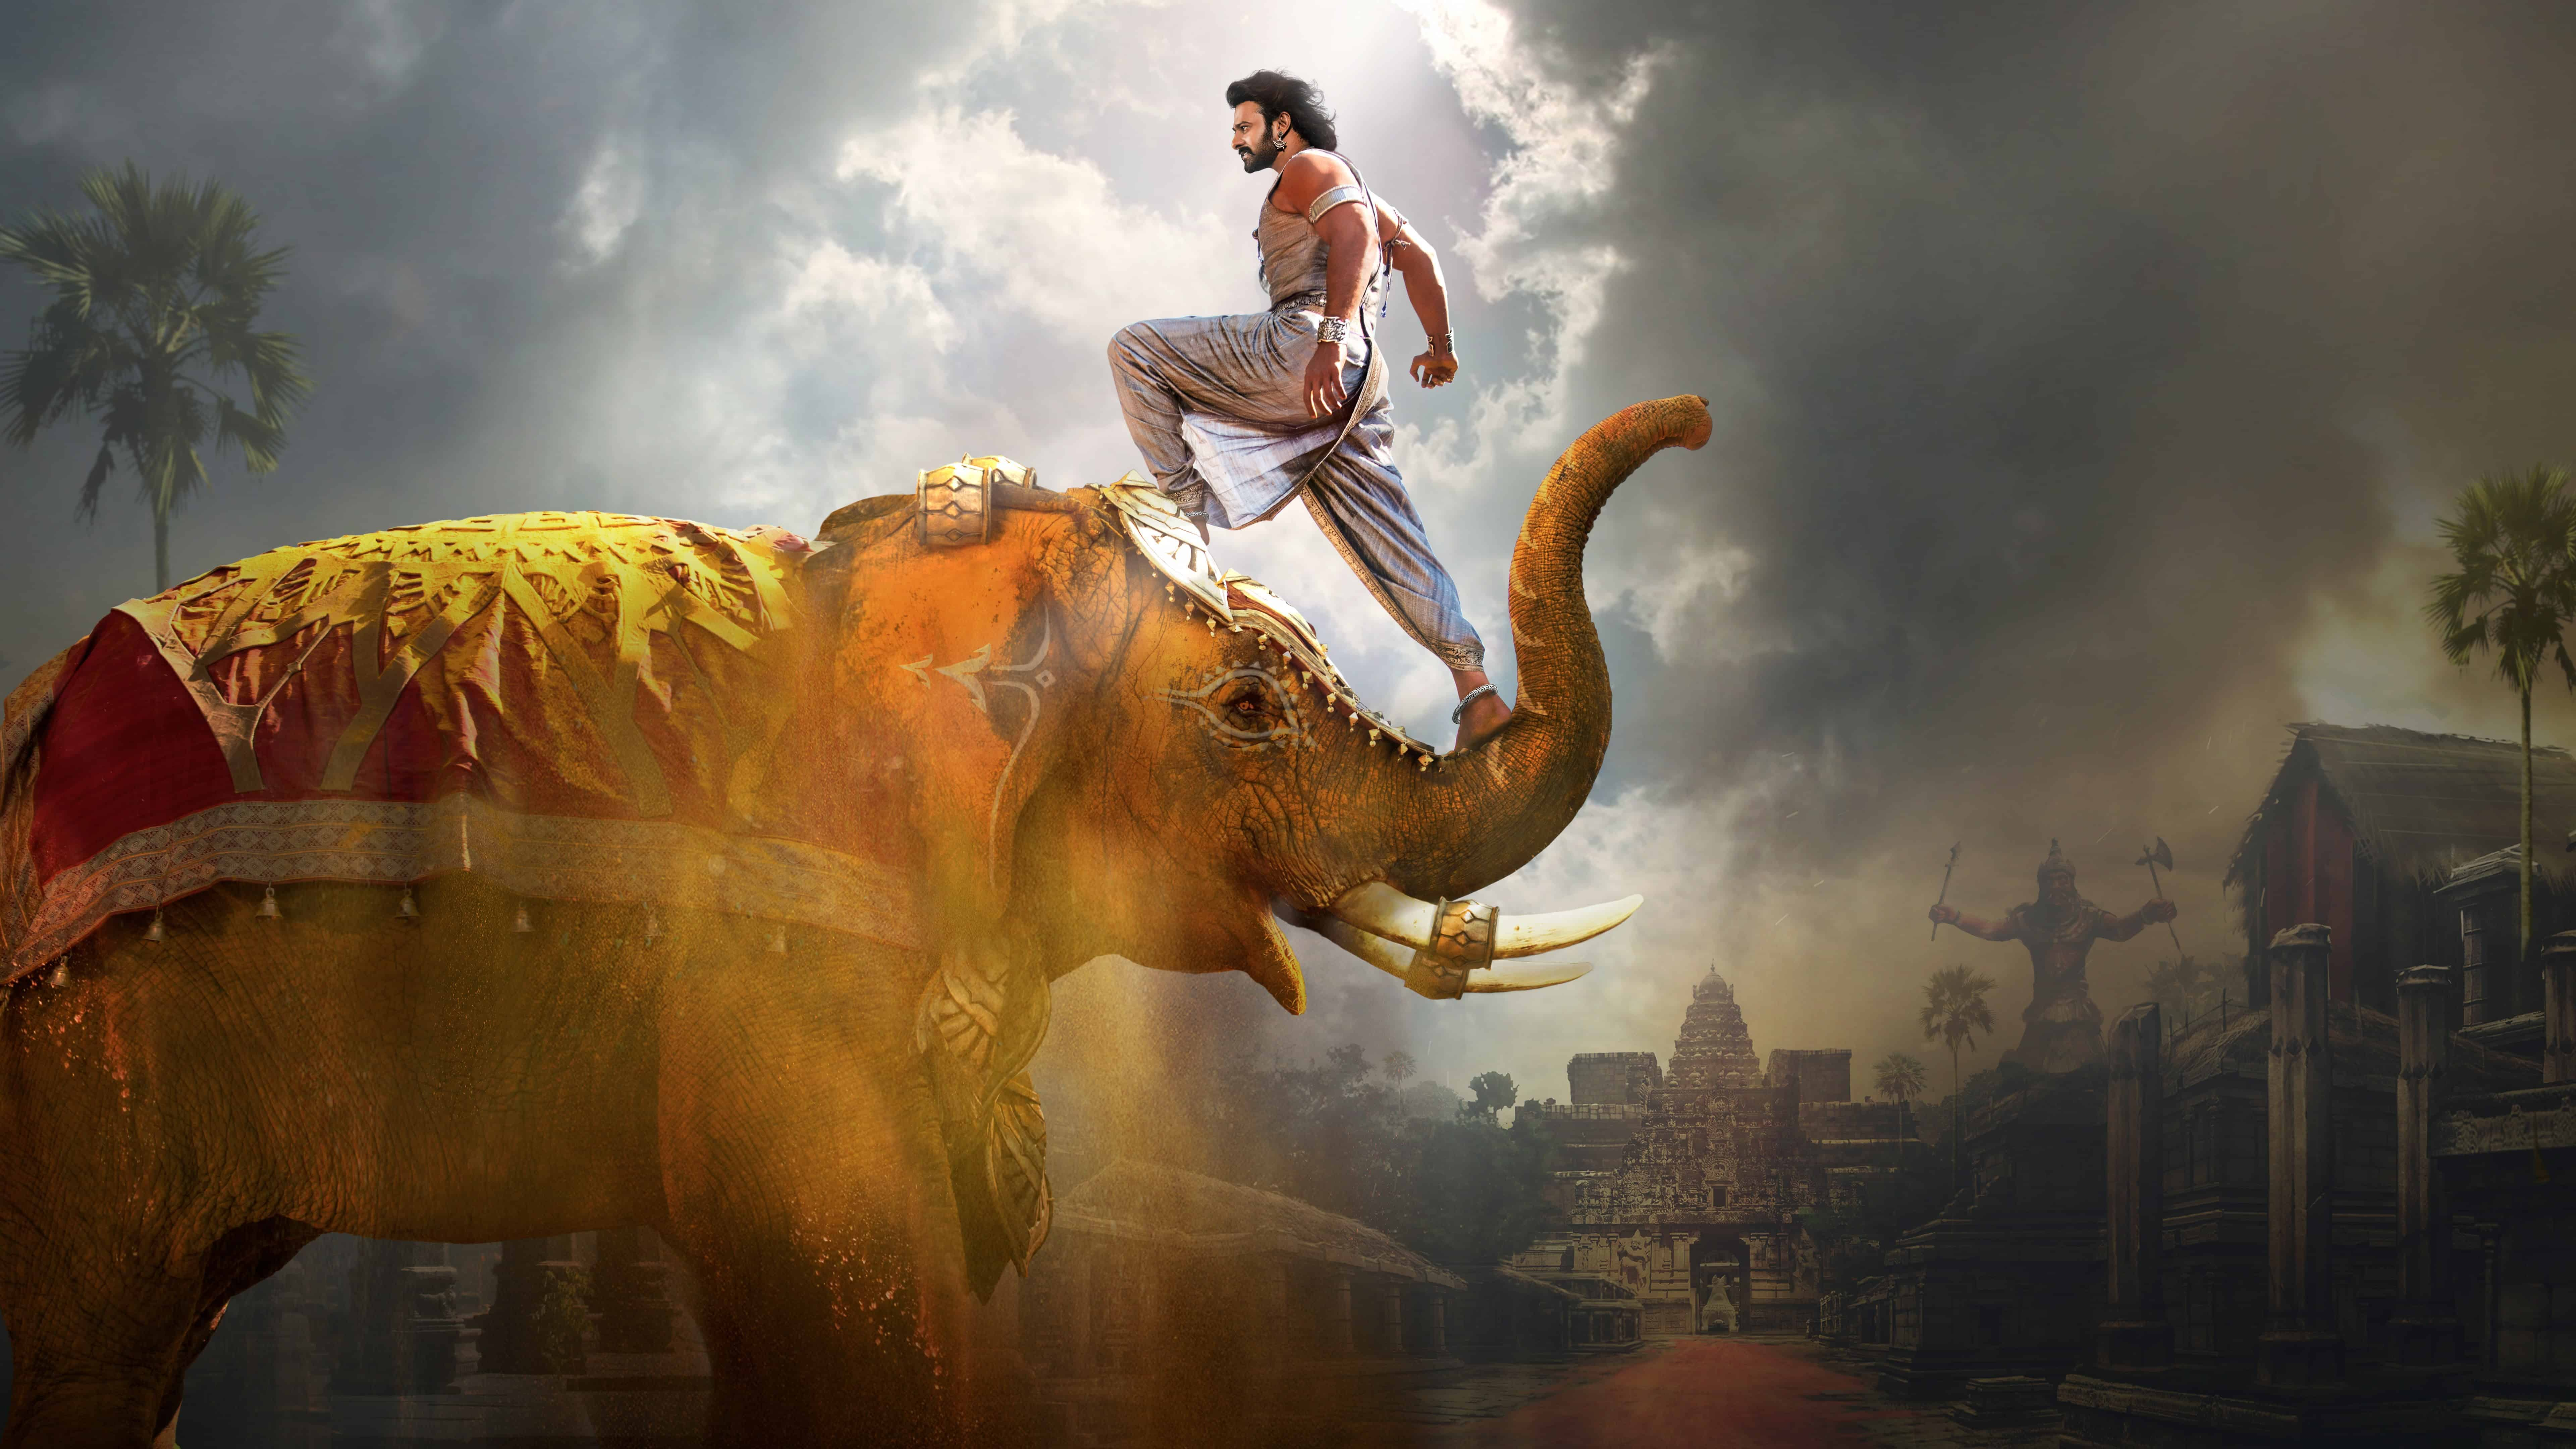 baahubali 2 the conclusion uhd 8k wallpaper